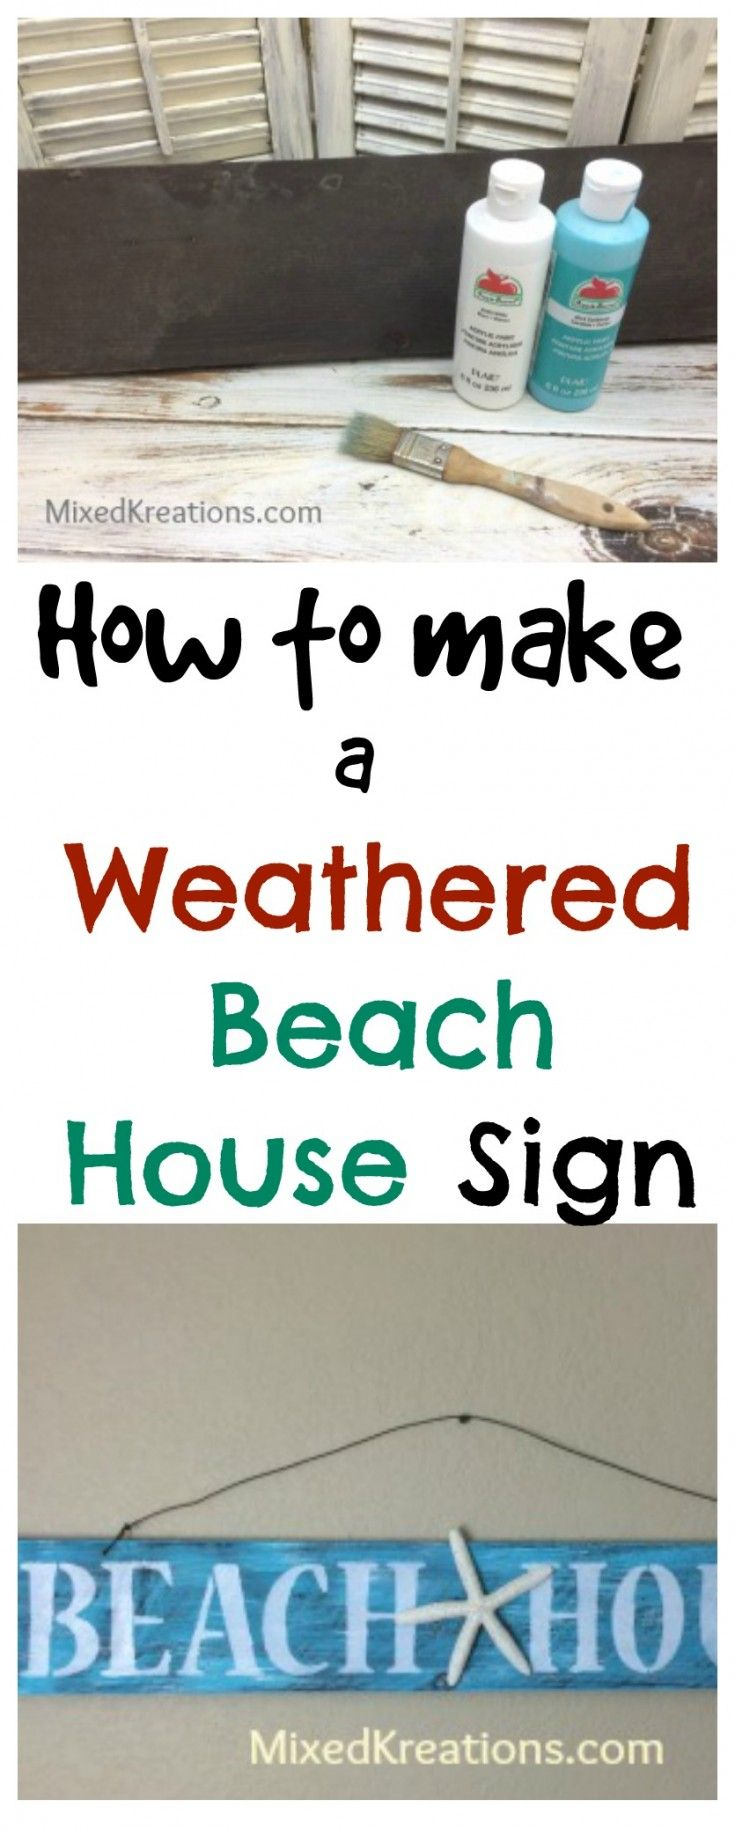 How to make a weathered beach house sign diy weathered beach sign diy beachy home decor beachsign weatheredbeachsign diybeachdecor mixedkreations com